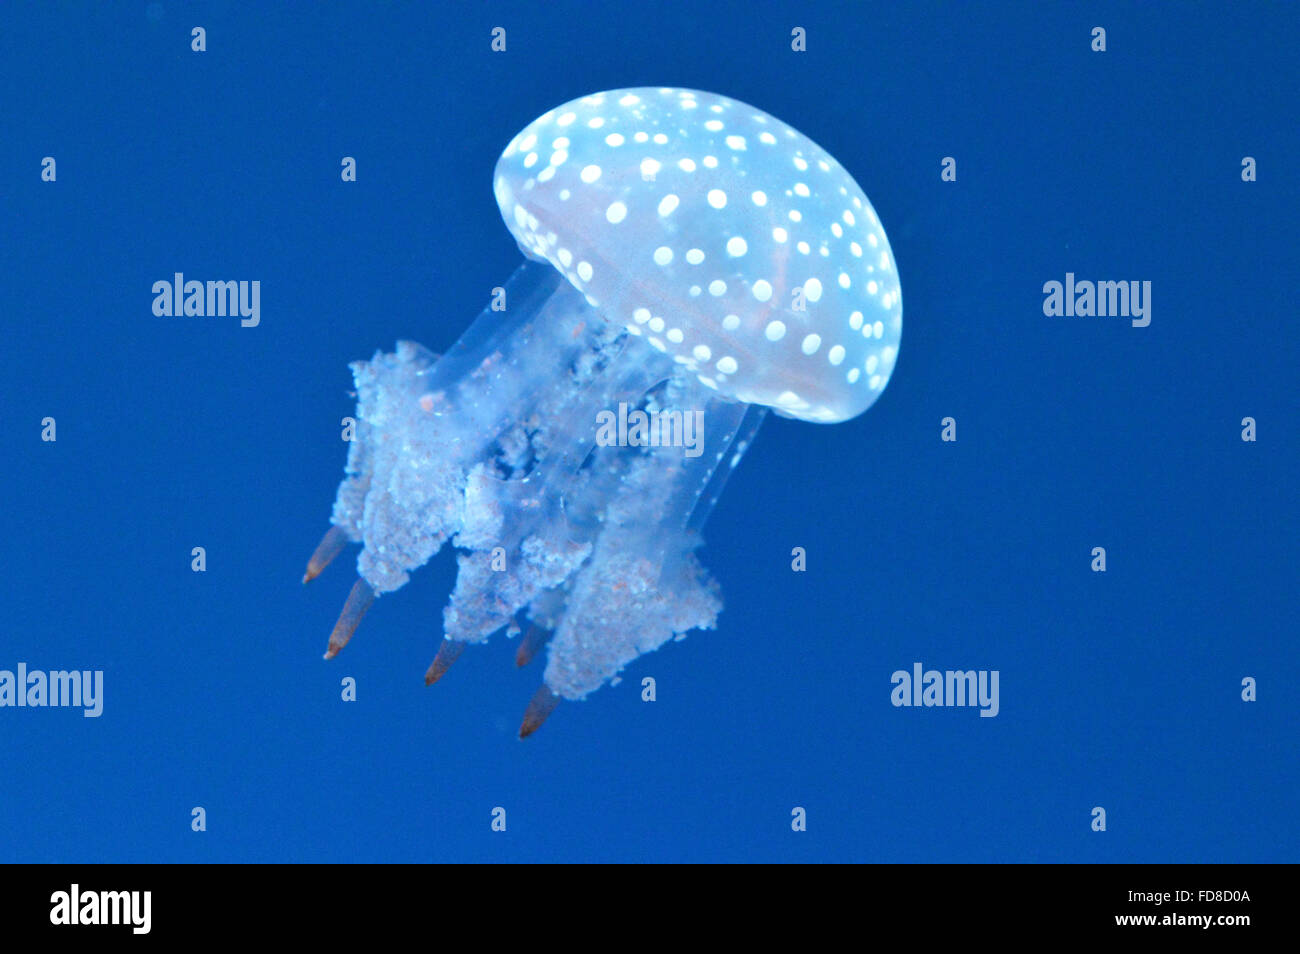 Spotted Jellyfish In Sea - Stock Image